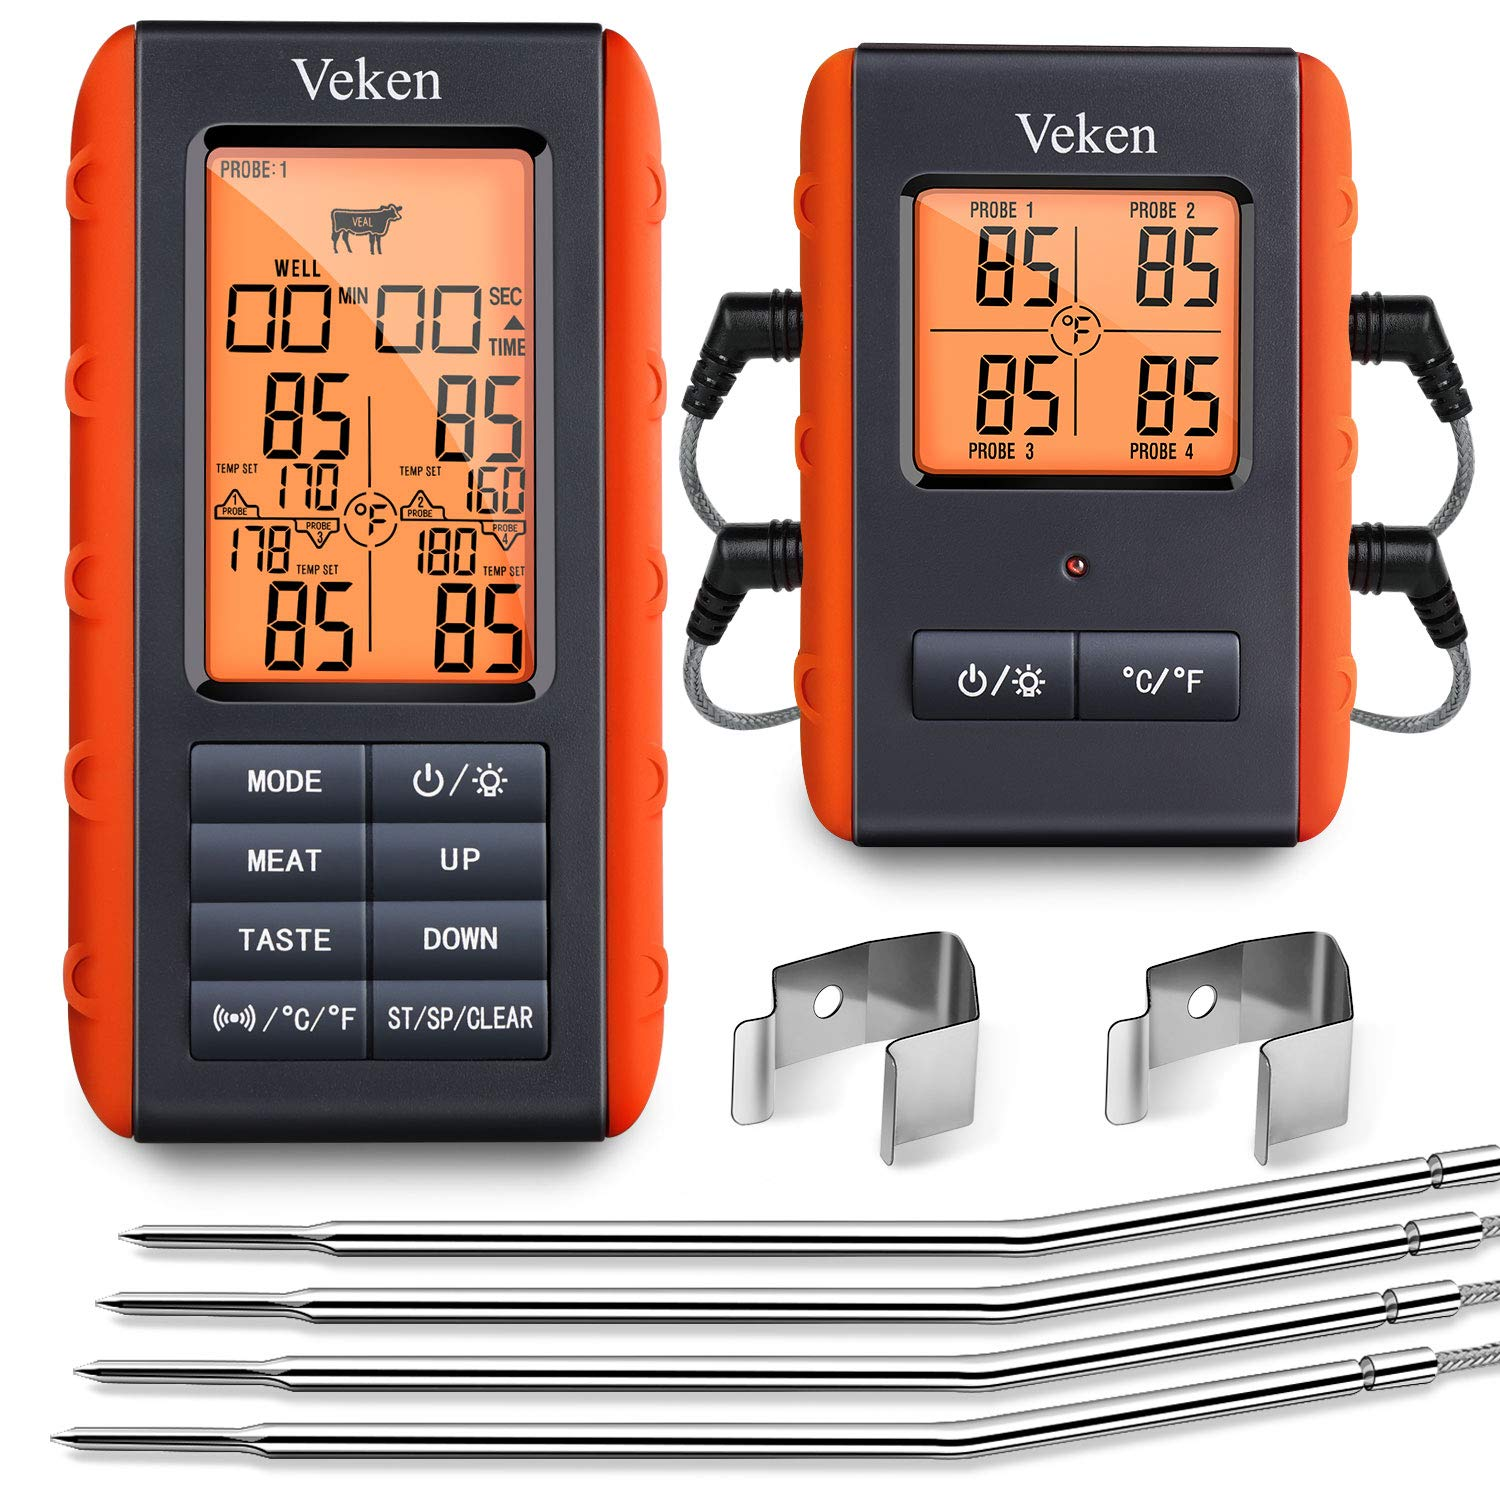 Veken BBQ Wireless Meat Grill Thermometer, 4 Probe Remote & Instant Read Digital Cooking Thermometer for Grilling, Waterproof Food Thermometer for Oven & Smoker & Roasting, 490 Feet